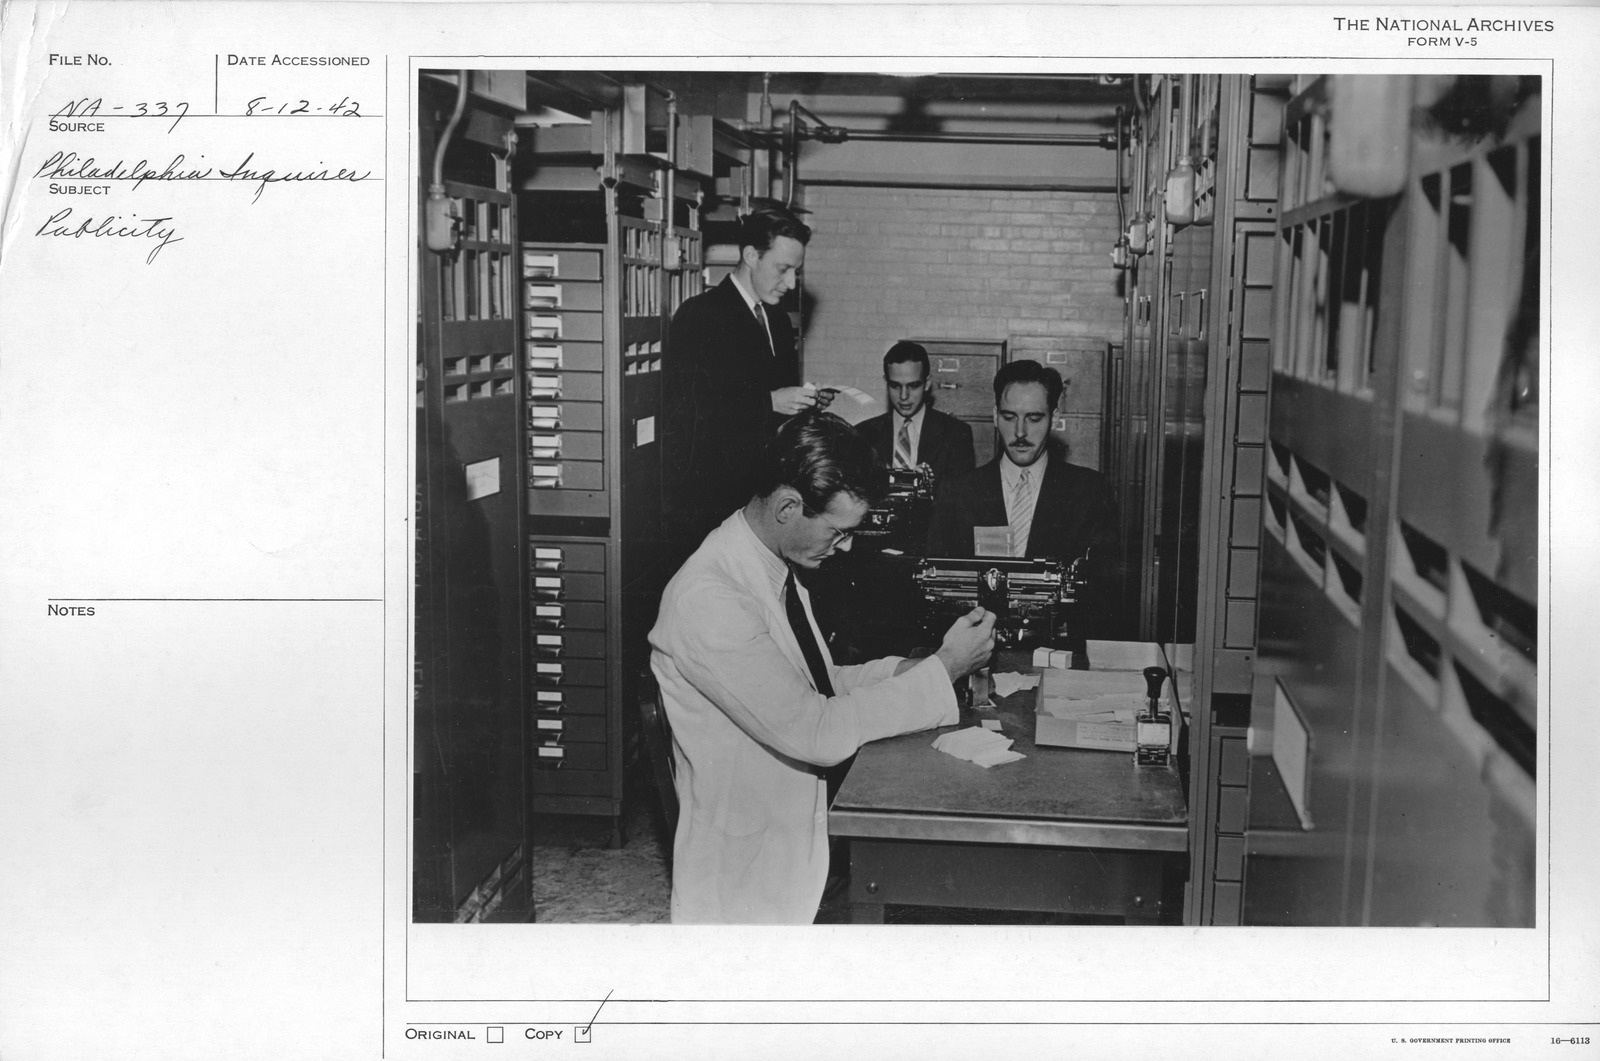 Photograph of Staff Members Labeling Records